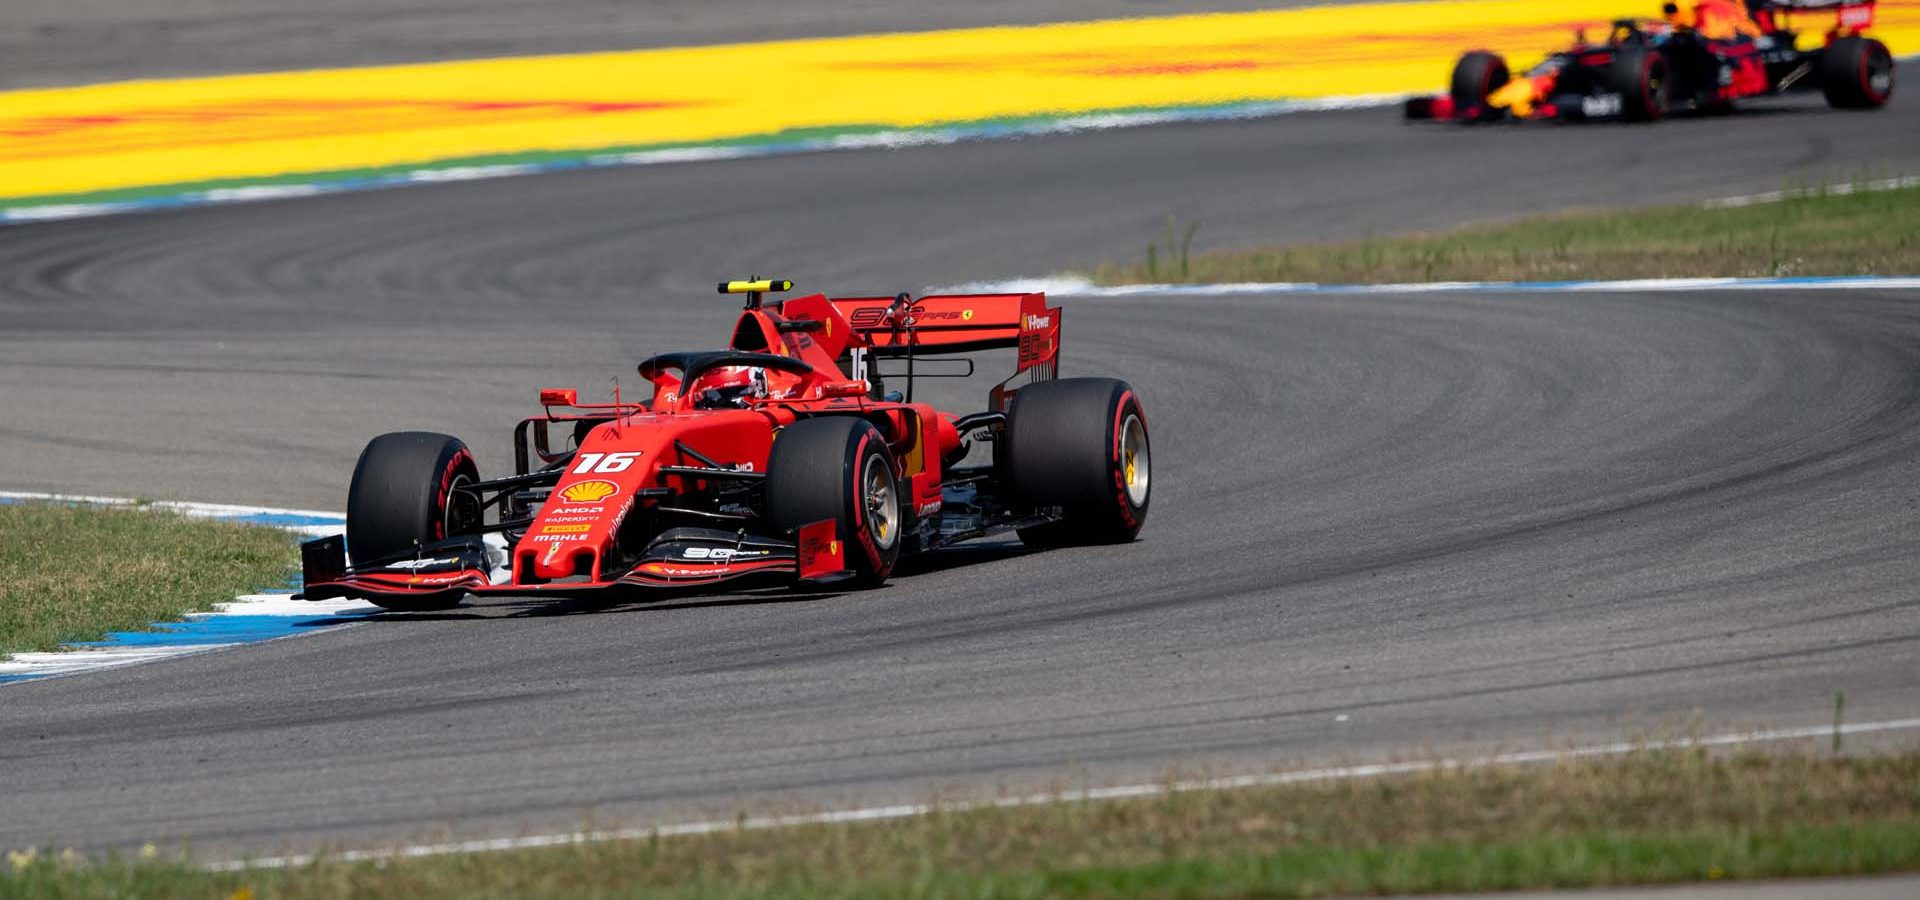 HOCKENHEIMRING, GERMANY - JULY 26: Charles Leclerc, Ferrari SF90, leads Pierre Gasly, Red Bull Racing RB15 during the German GP at Hockenheimring on July 26, 2019 in Hockenheimring, Germany. (Photo by Jerry Andre / LAT Images)